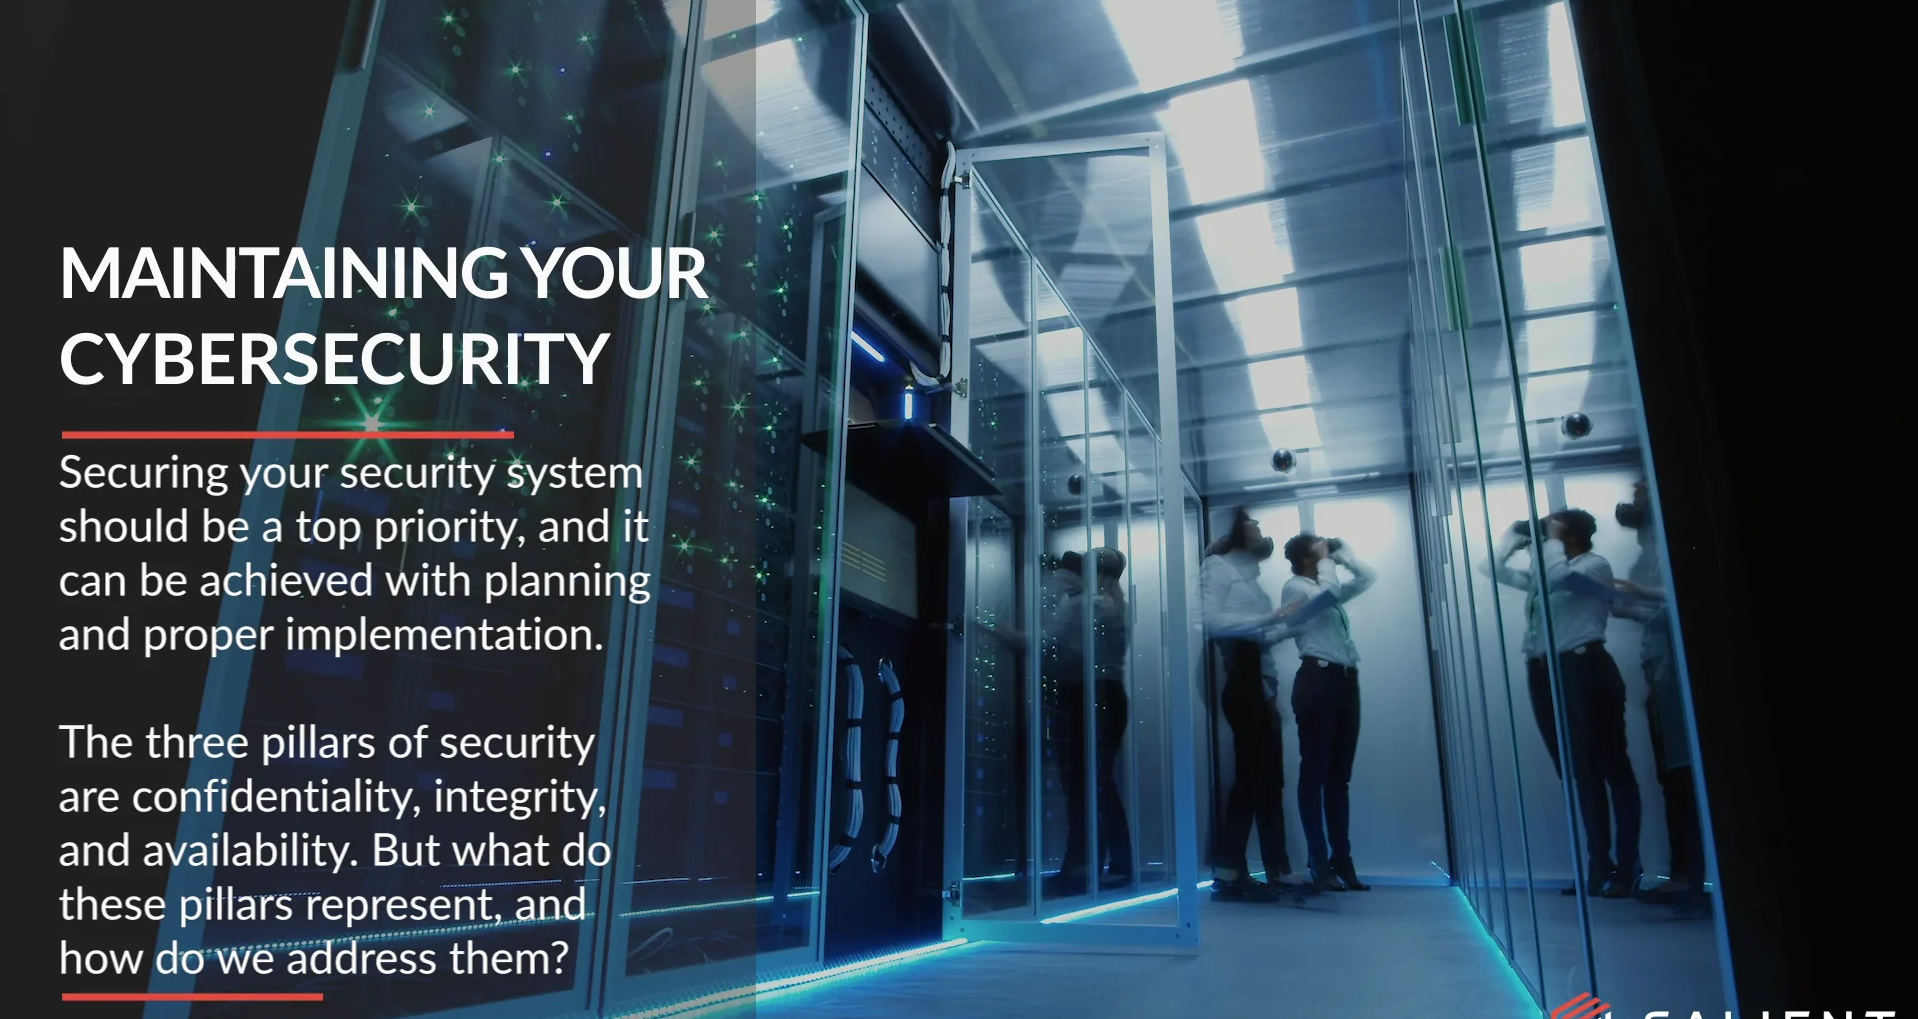 poster image for Maintaining Your Cybersecurity video